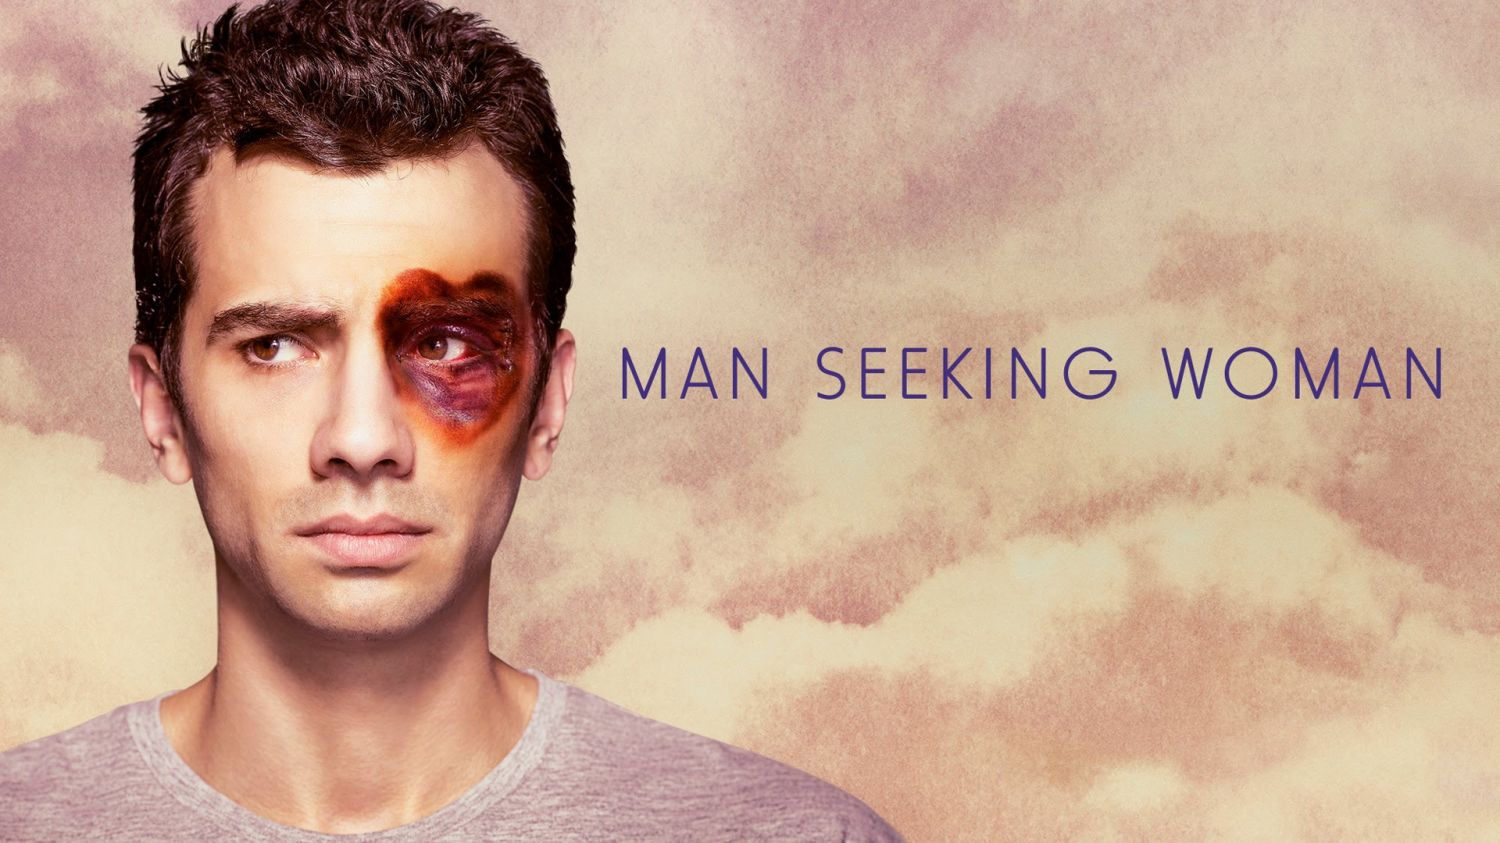 Man seeking european women